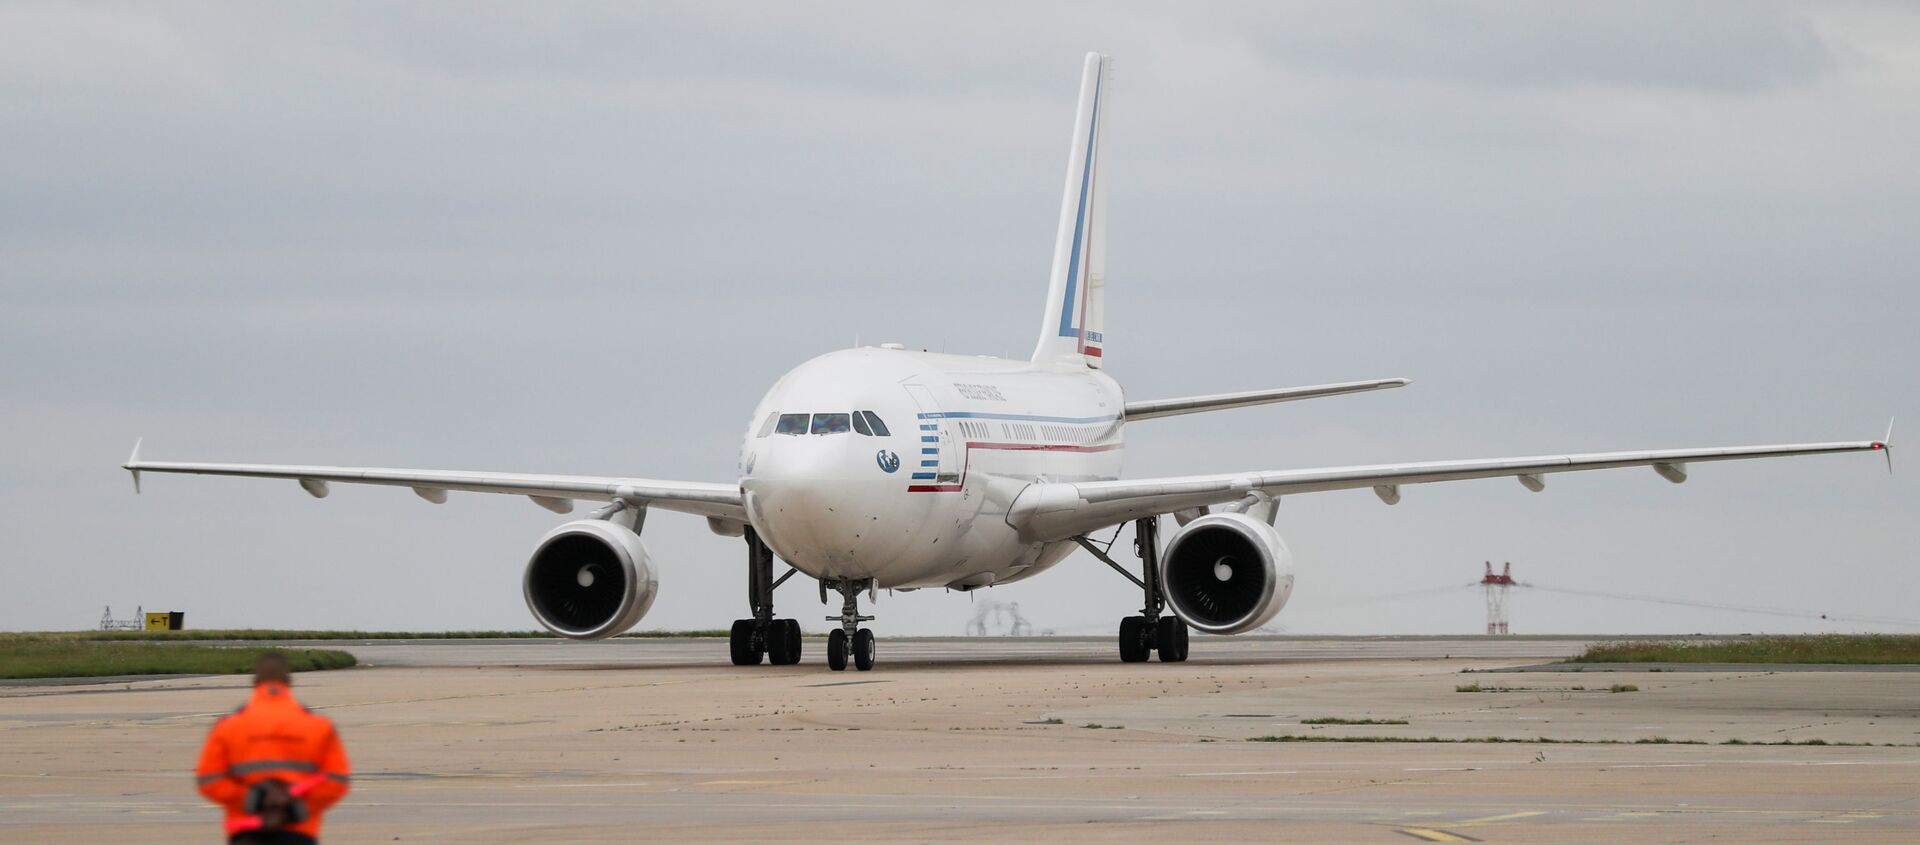 A plane carrying people who have been evacuated from Afghanistan taxis on the tarmac at Roissy Charles-de-Gaulle airport after Taliban insurgents entered Afghanistan's capital Kabul, in Paris, France, August 17, 2021. - Sputnik International, 1920